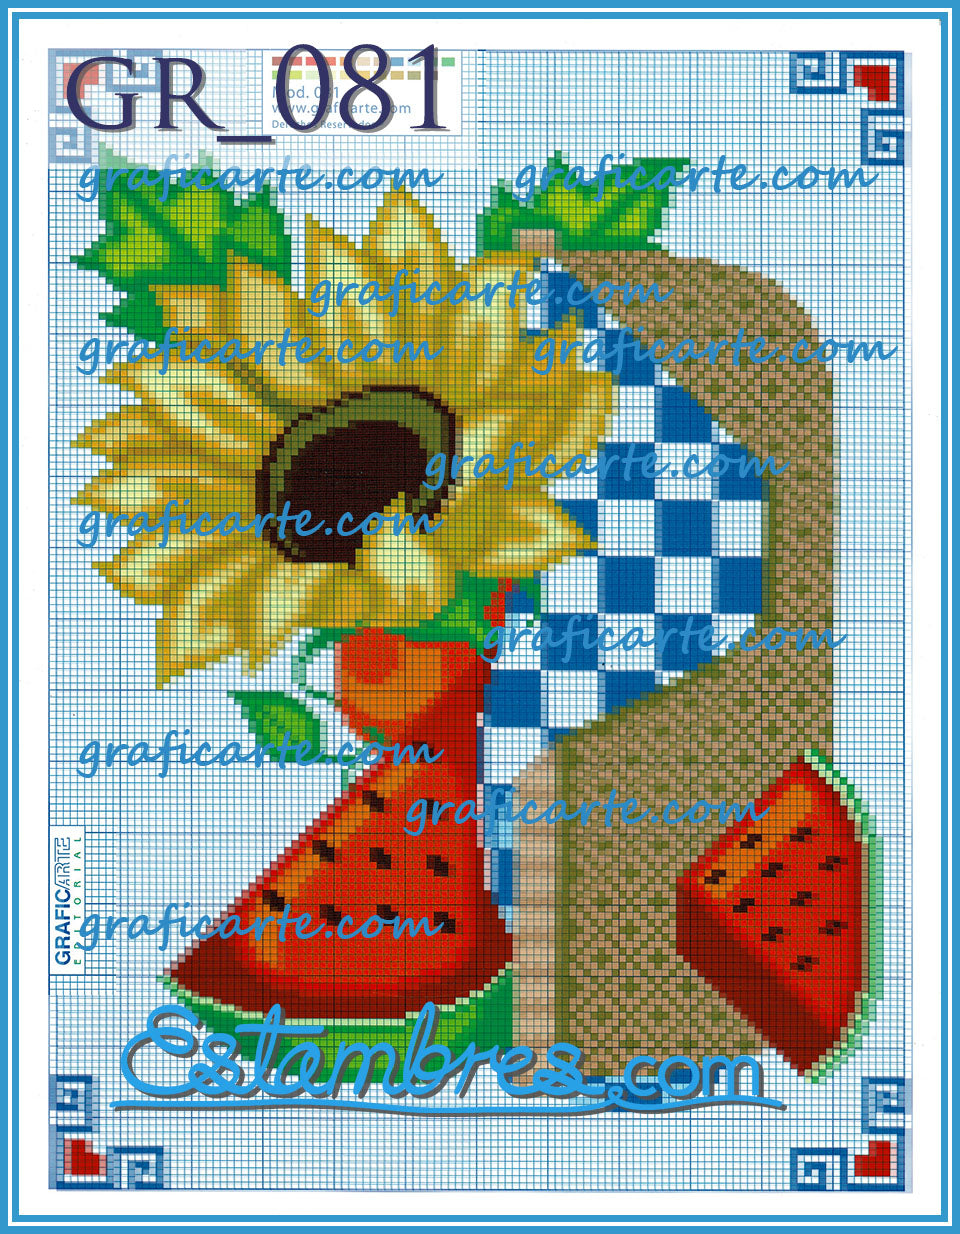 Graficarte [001-070] - 1 of 5 - Embroidery Pattern | Crewel Stitch Embroidery | Creative Needlecraft Schemes